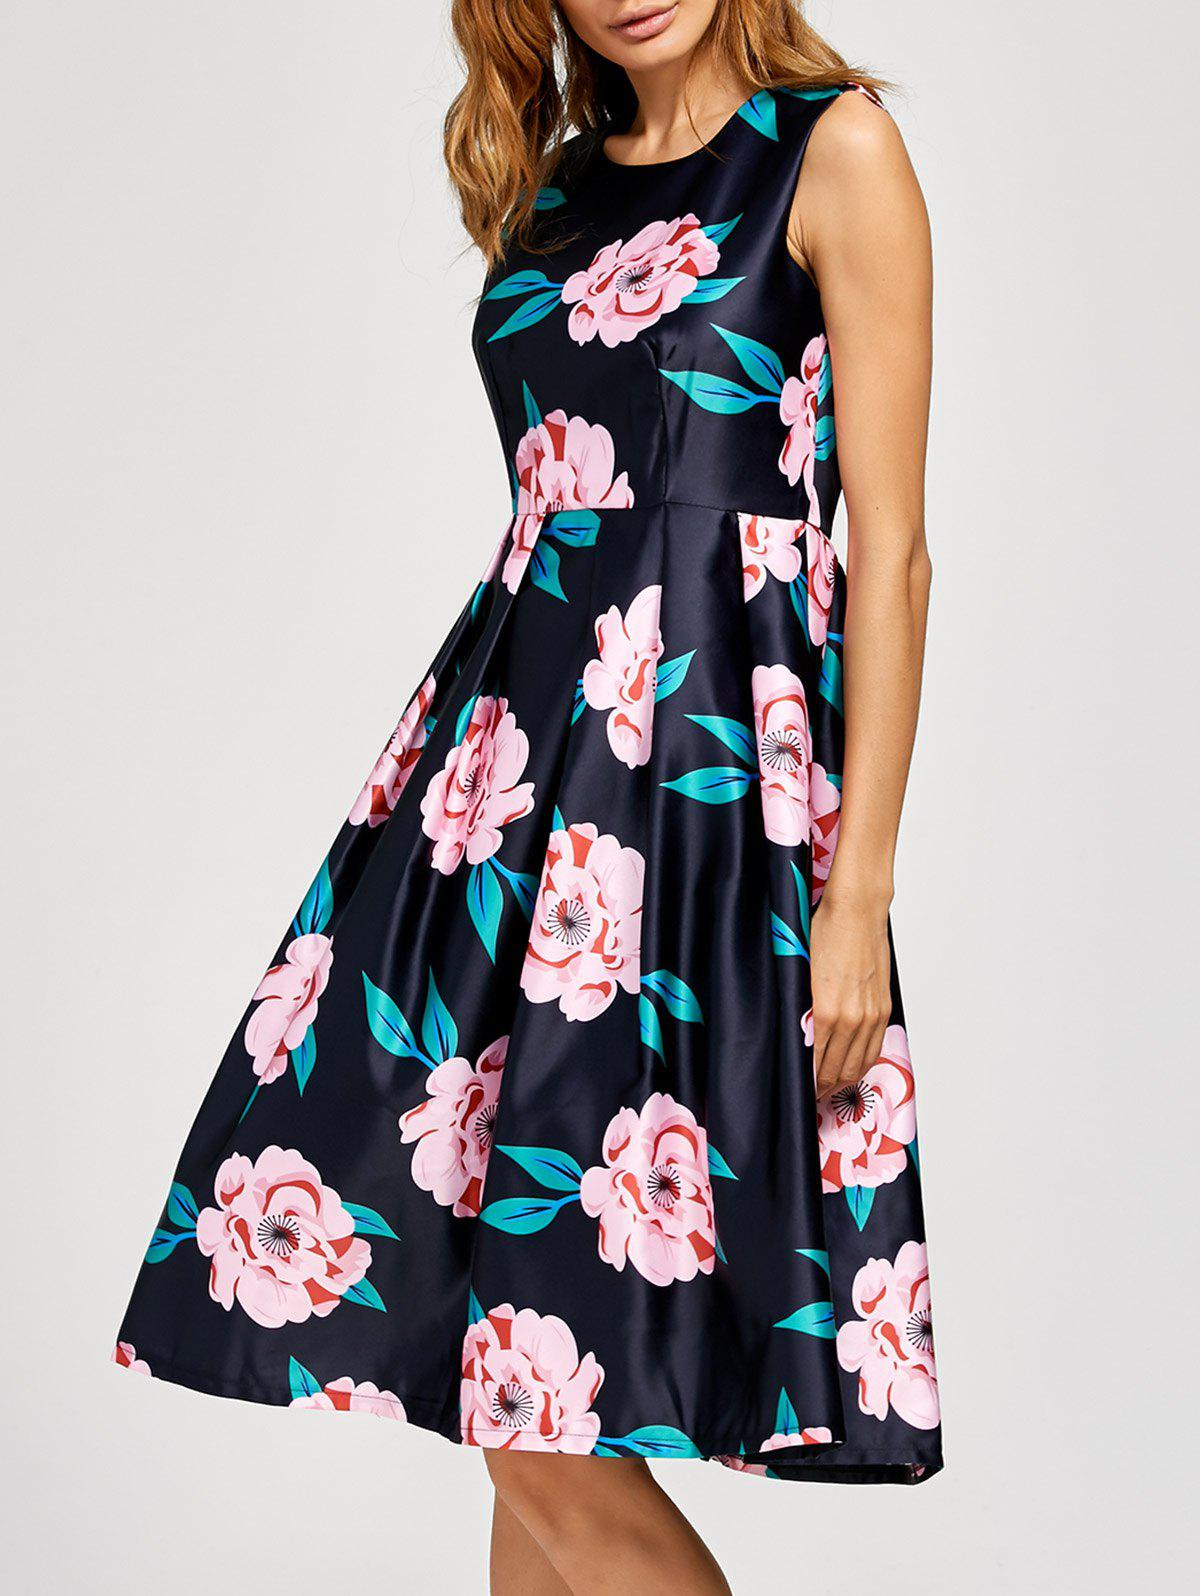 Floral Fit And Flare Midi Dress floral fit and flare midi dress